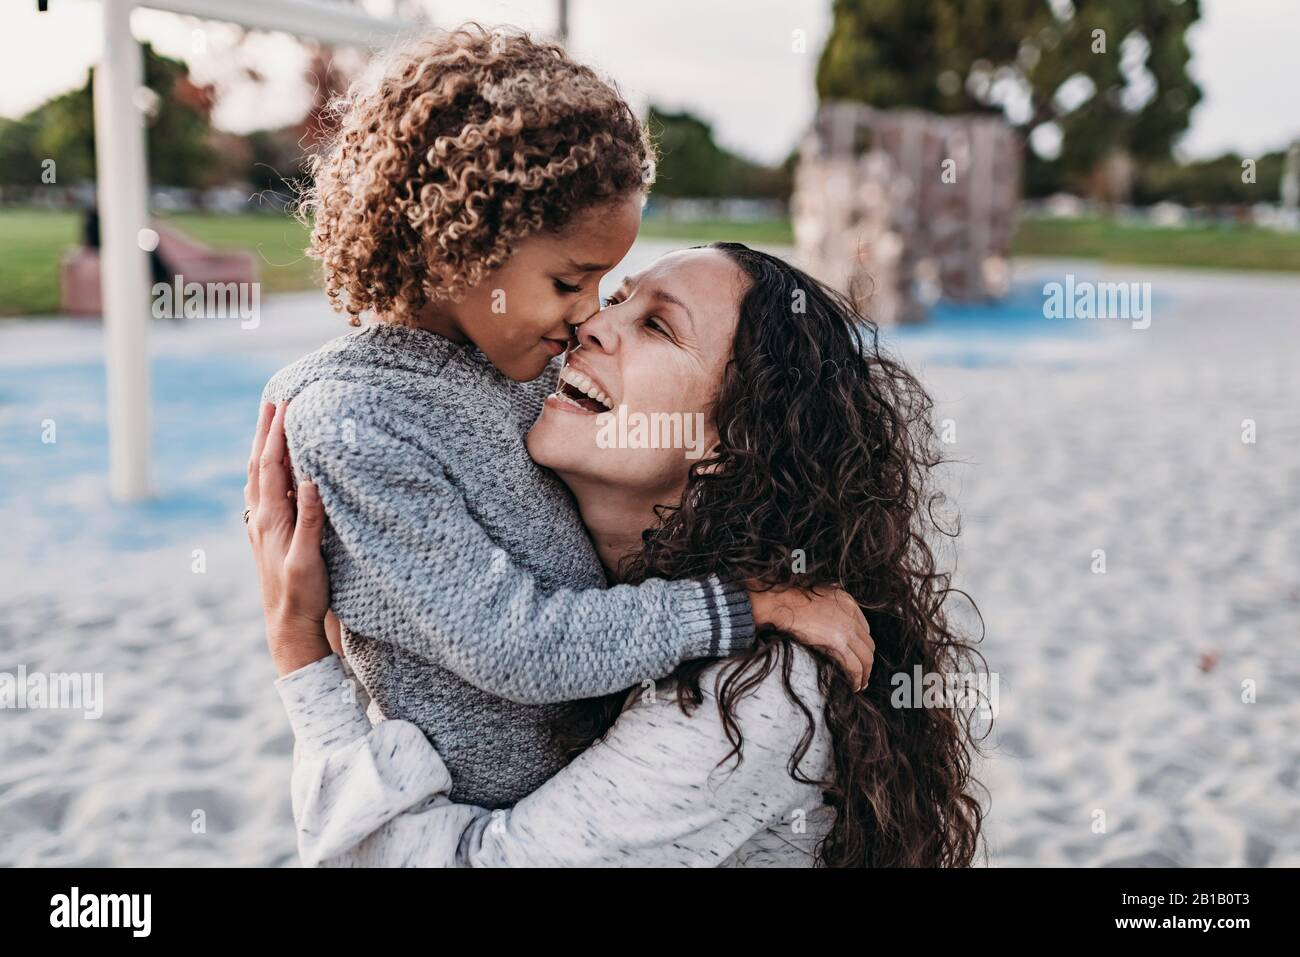 Close up of happy mother and son embracing closely on playground Stock Photo